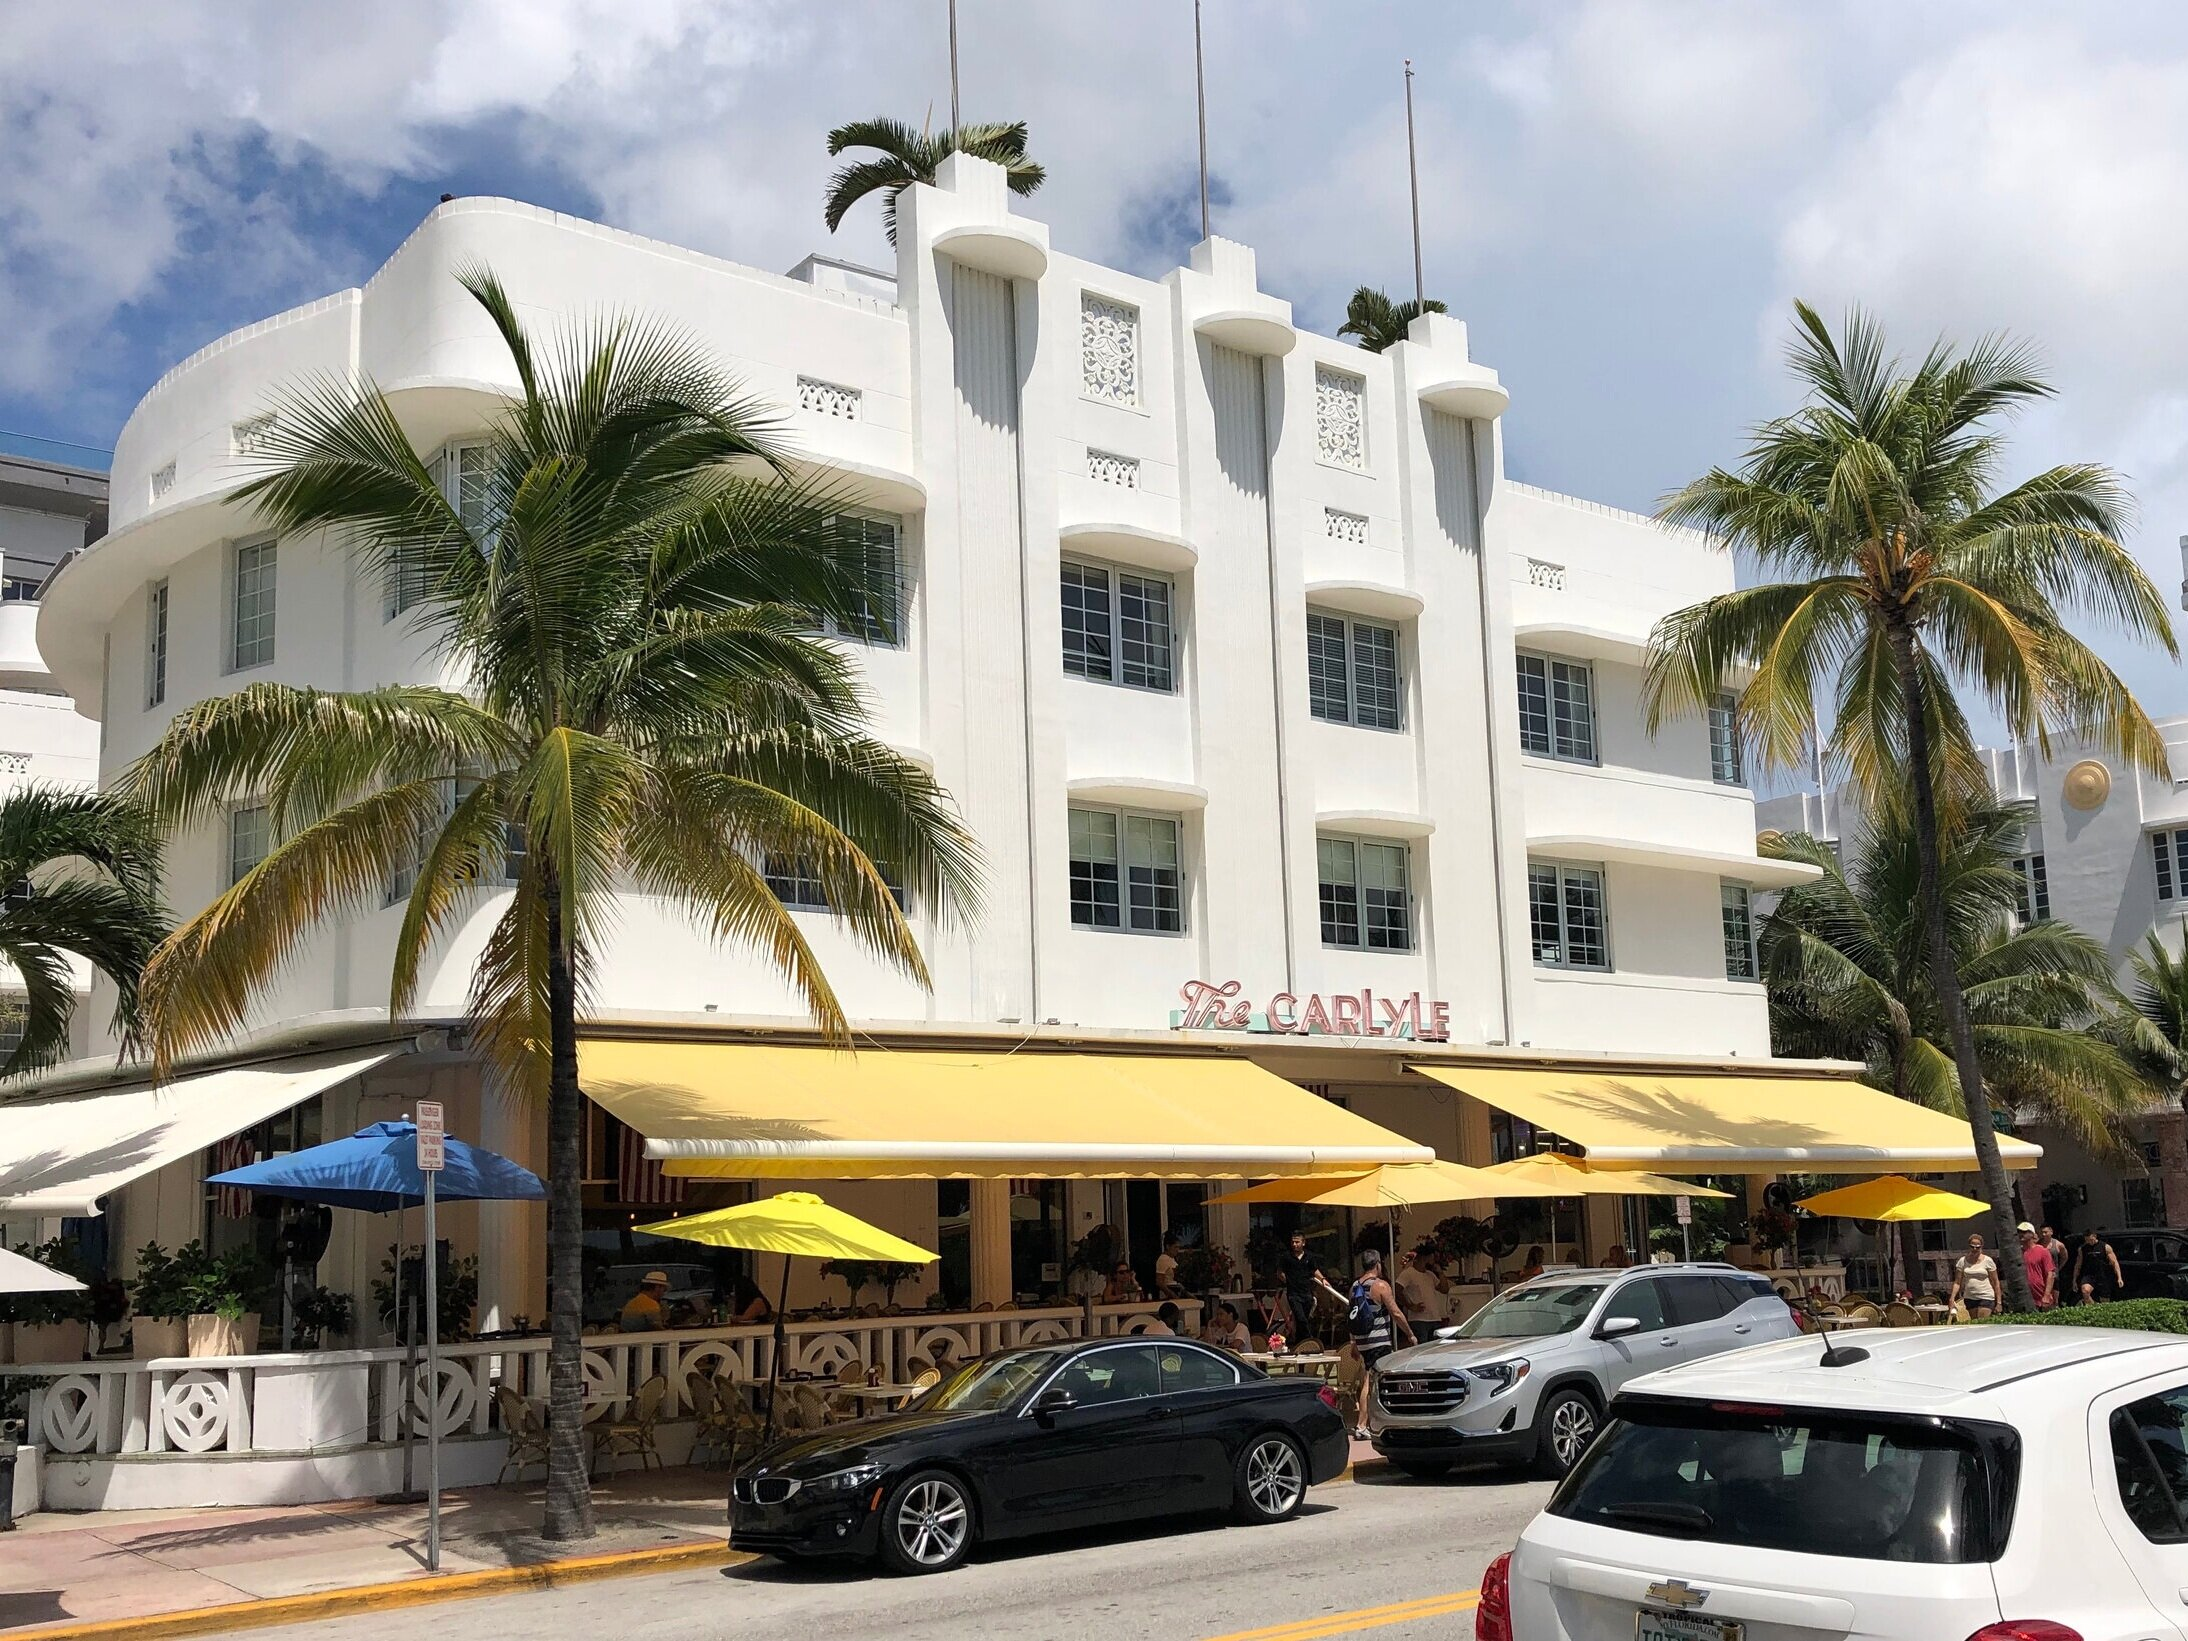 Finished in 1941, The Carlyle is quintessential Miami Beach deco. Its iconic facade is a beautiful example of the Art Deco rule of thirds, and it's been the backdrop for many classic Miami-based films including  Scarface ,  The Birdcage , and  Bad Boys .